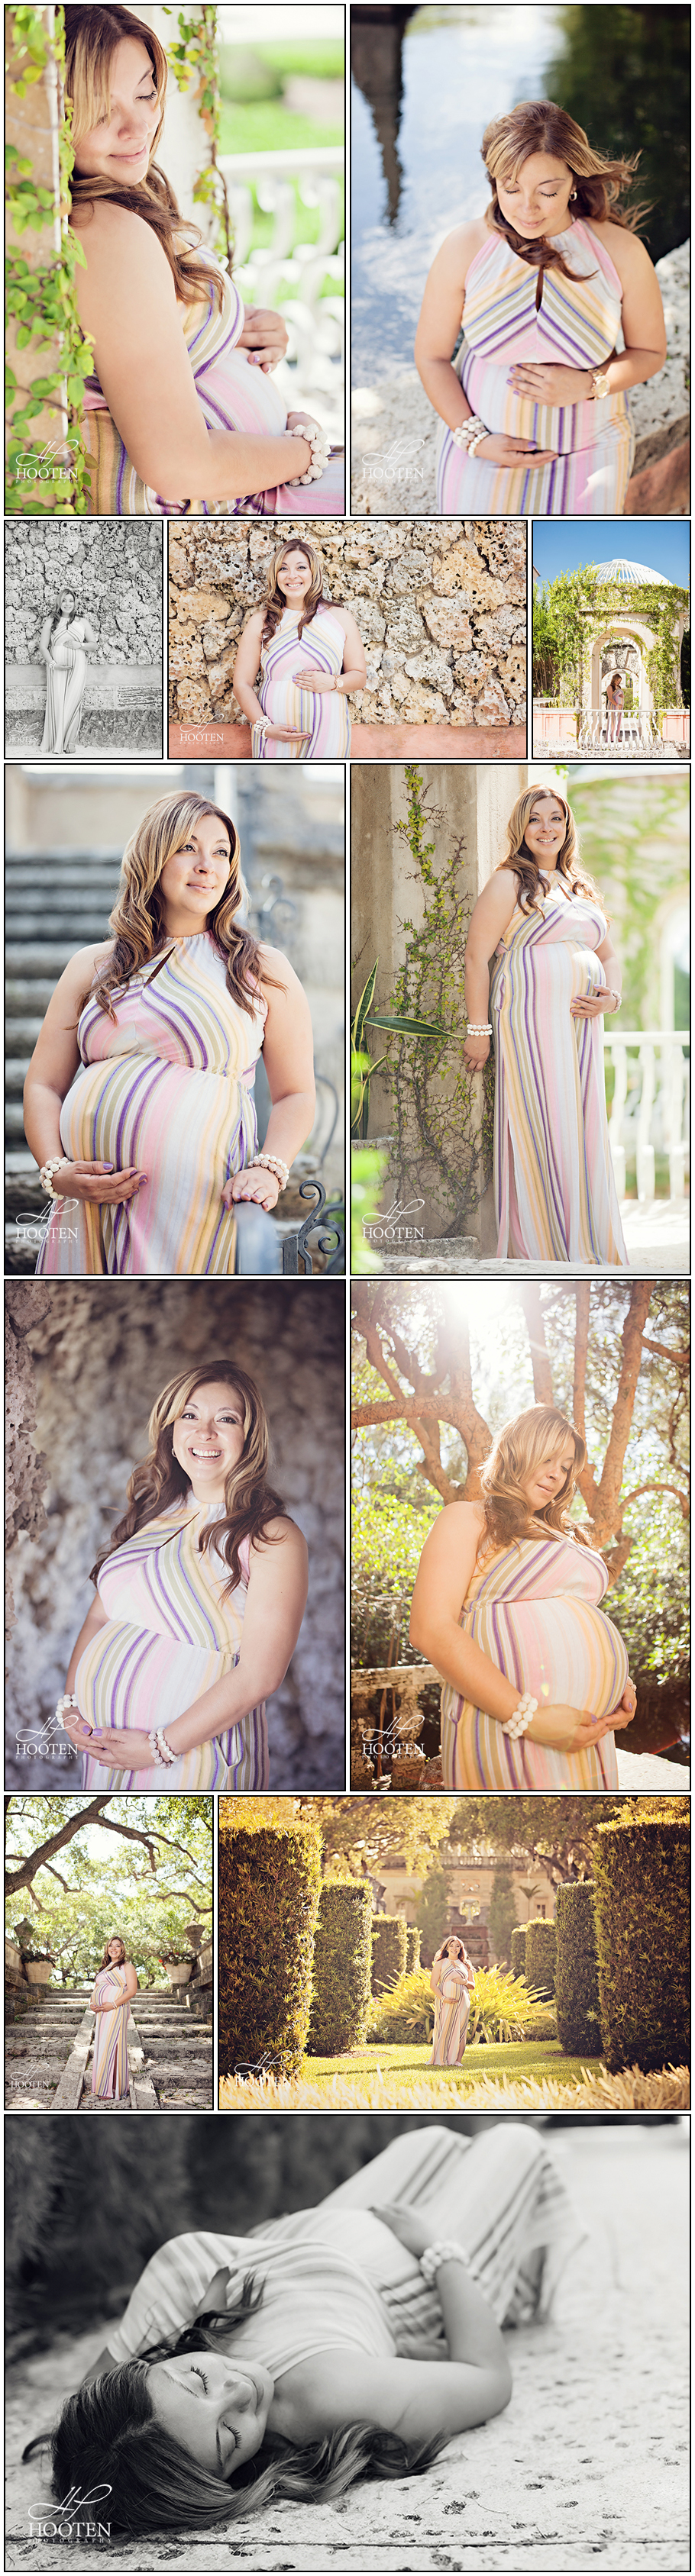 Miami-Vizcaya-Maternity-Photography-Xiomara-Blog-2.jpg